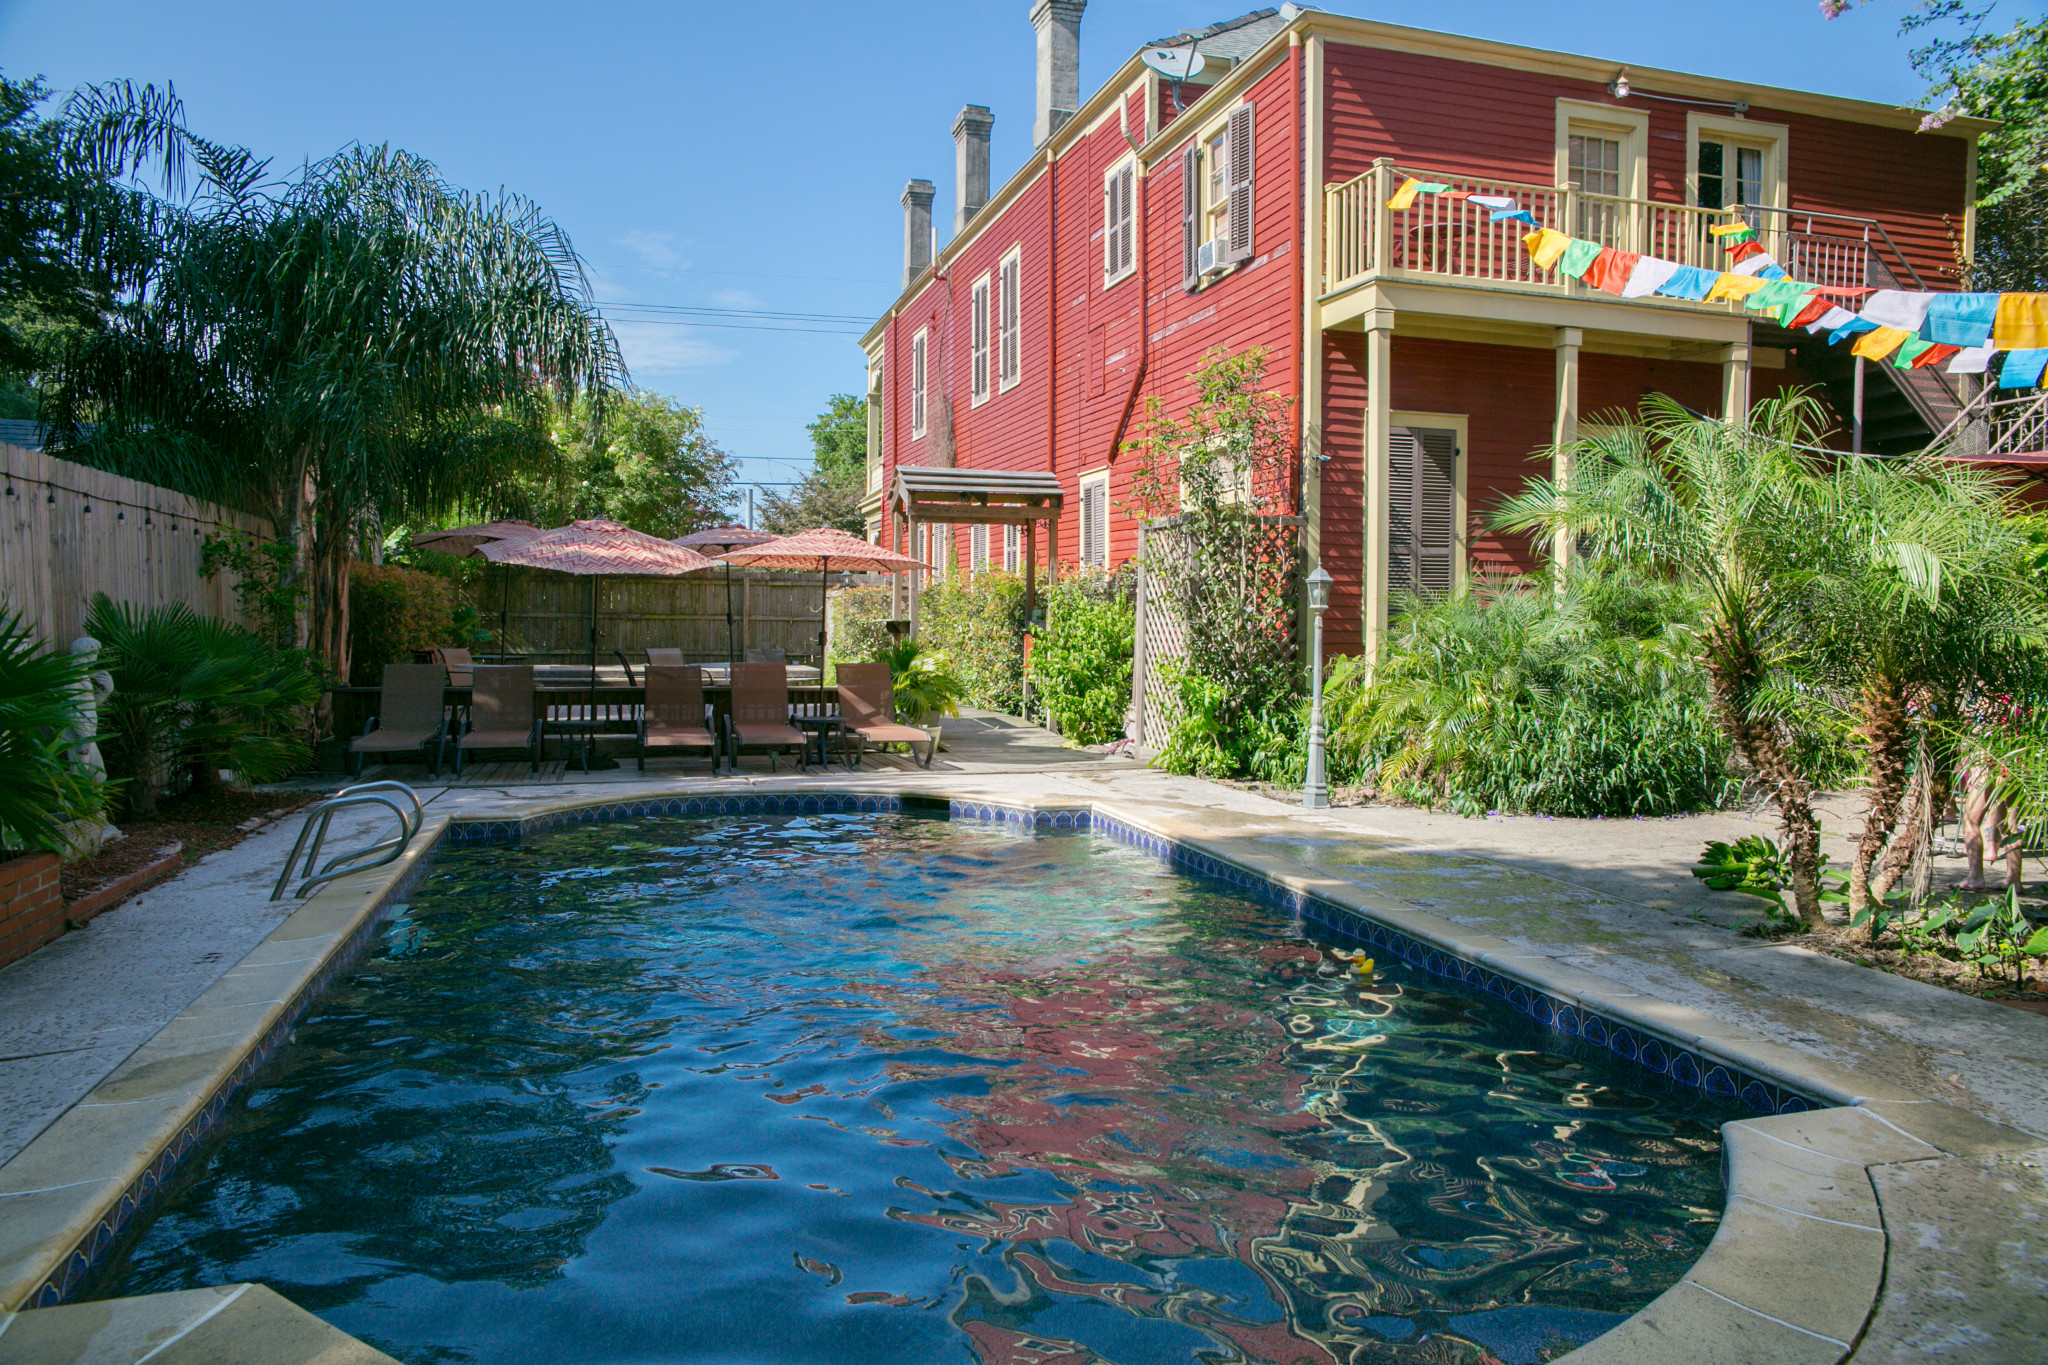 A Decadent Escape New Orleans Best LGBT B&B Courtyards